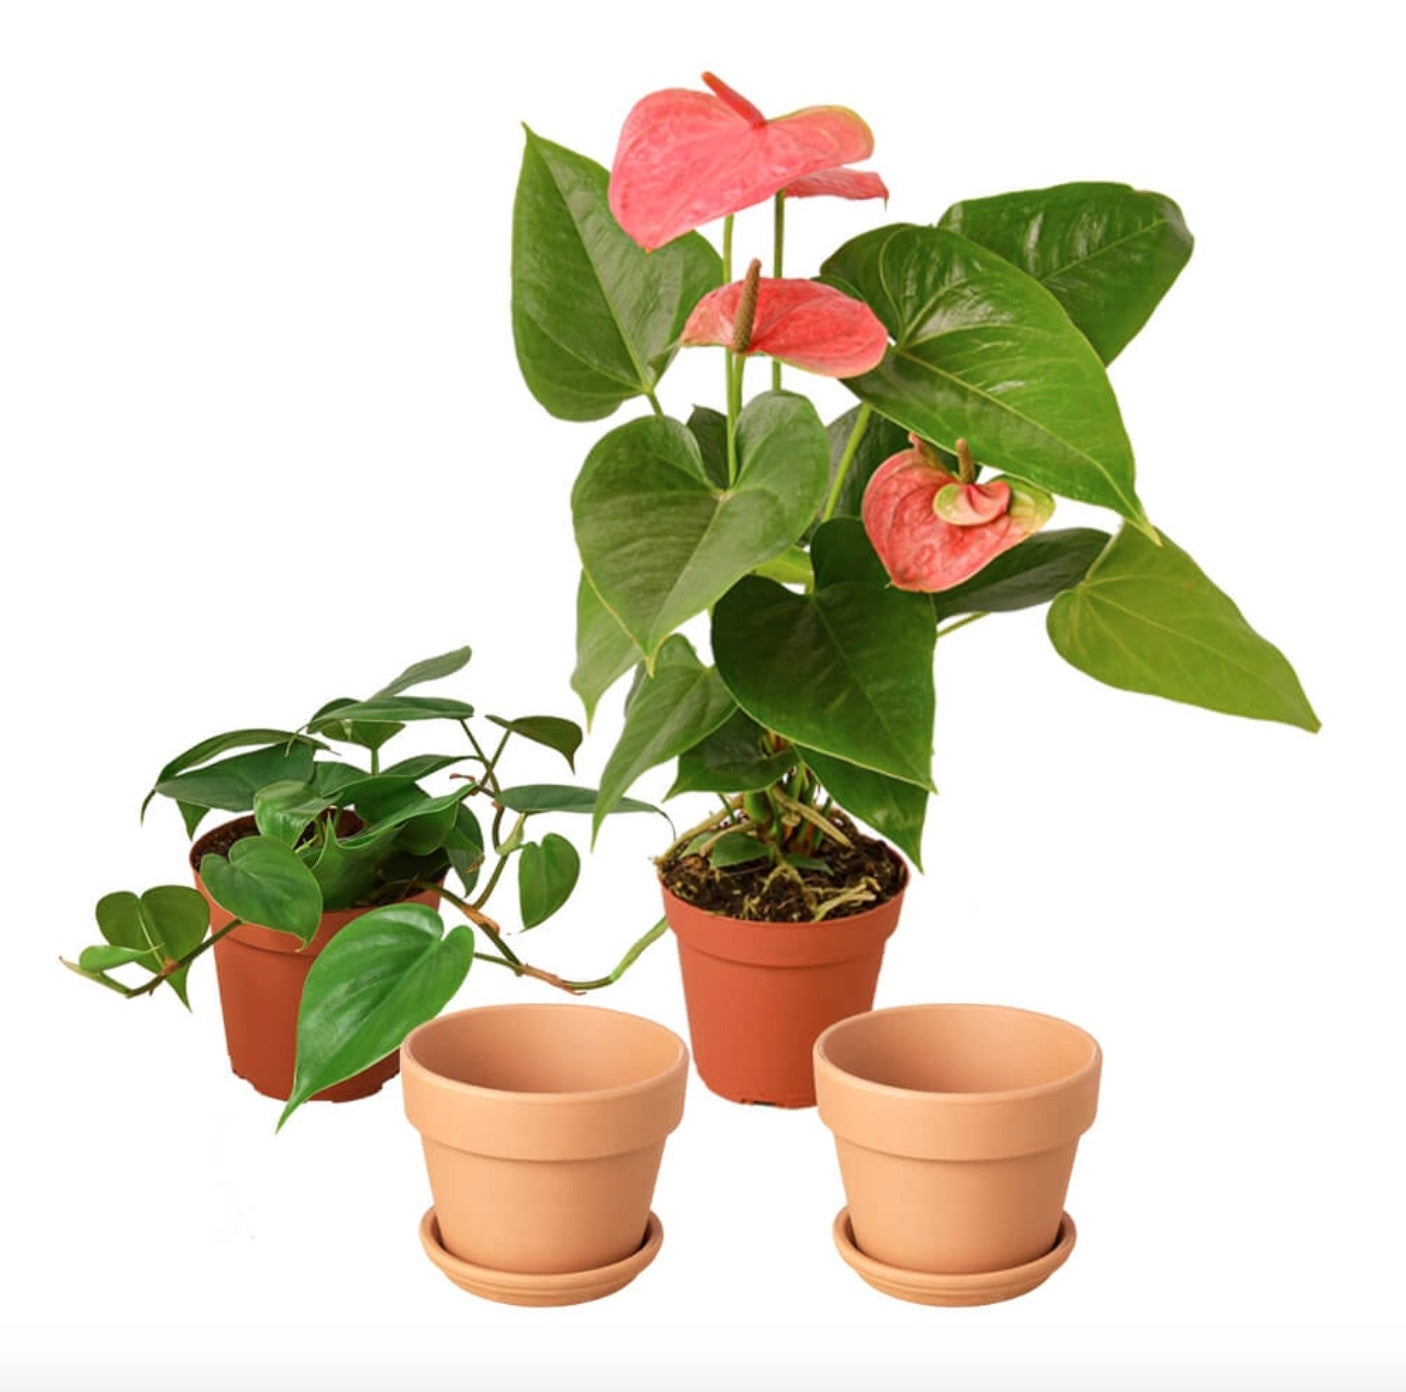 The plant gift bundle